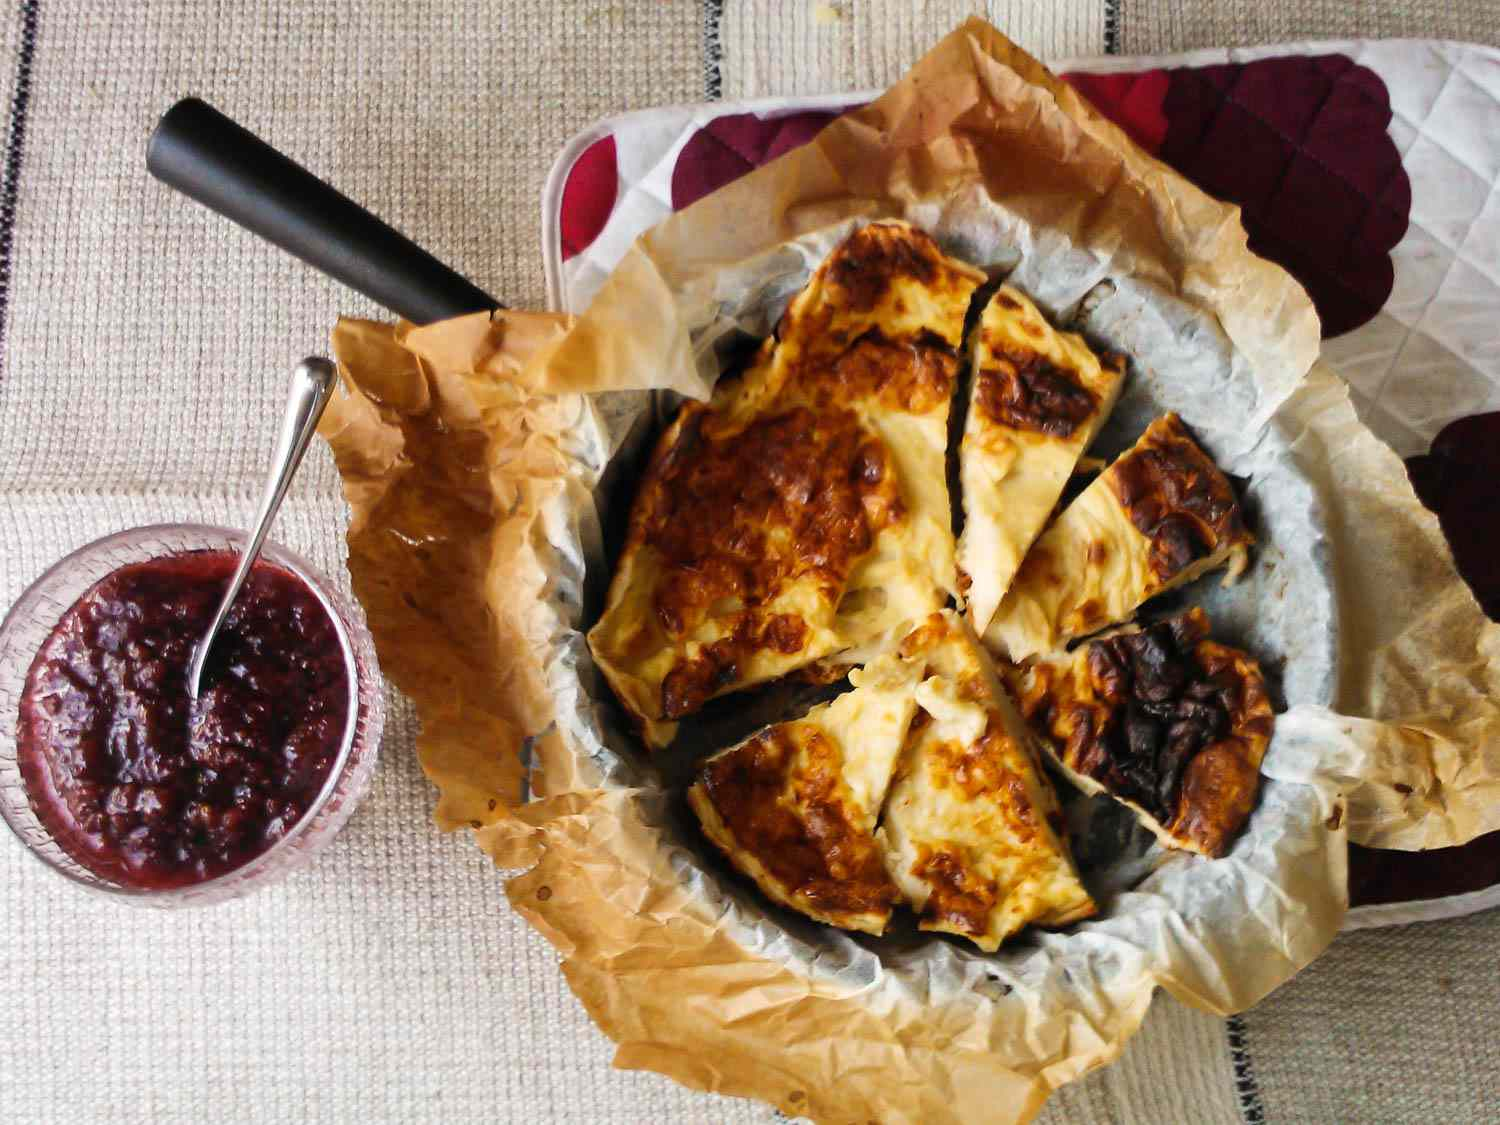 A large pannukakku in parchment paper on a skillet, with a bowl of jam next to it.